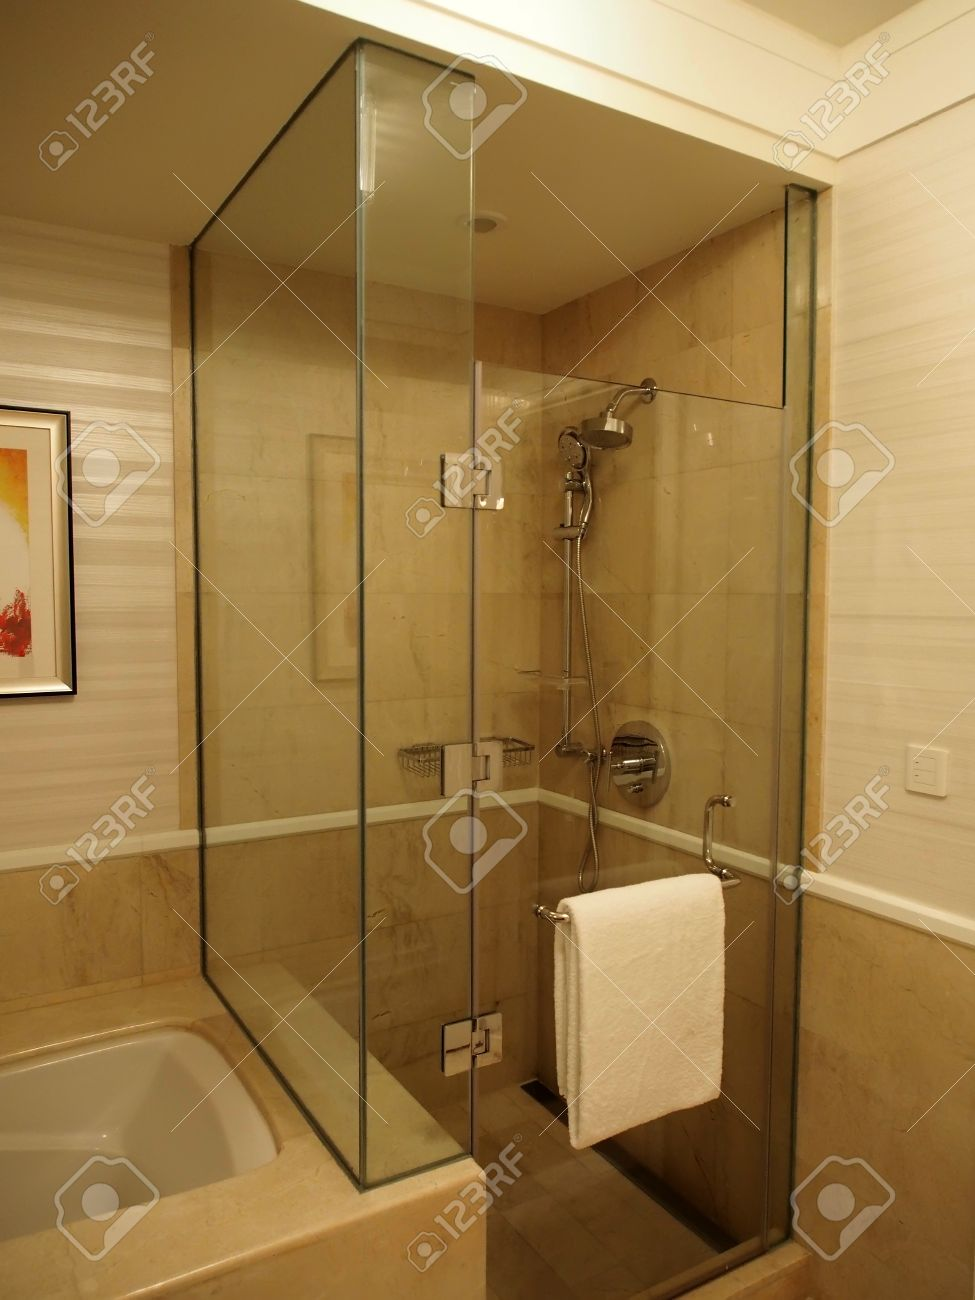 Glass Enclosed Shower glass enclosed shower stall in bathroom stock photo, picture and